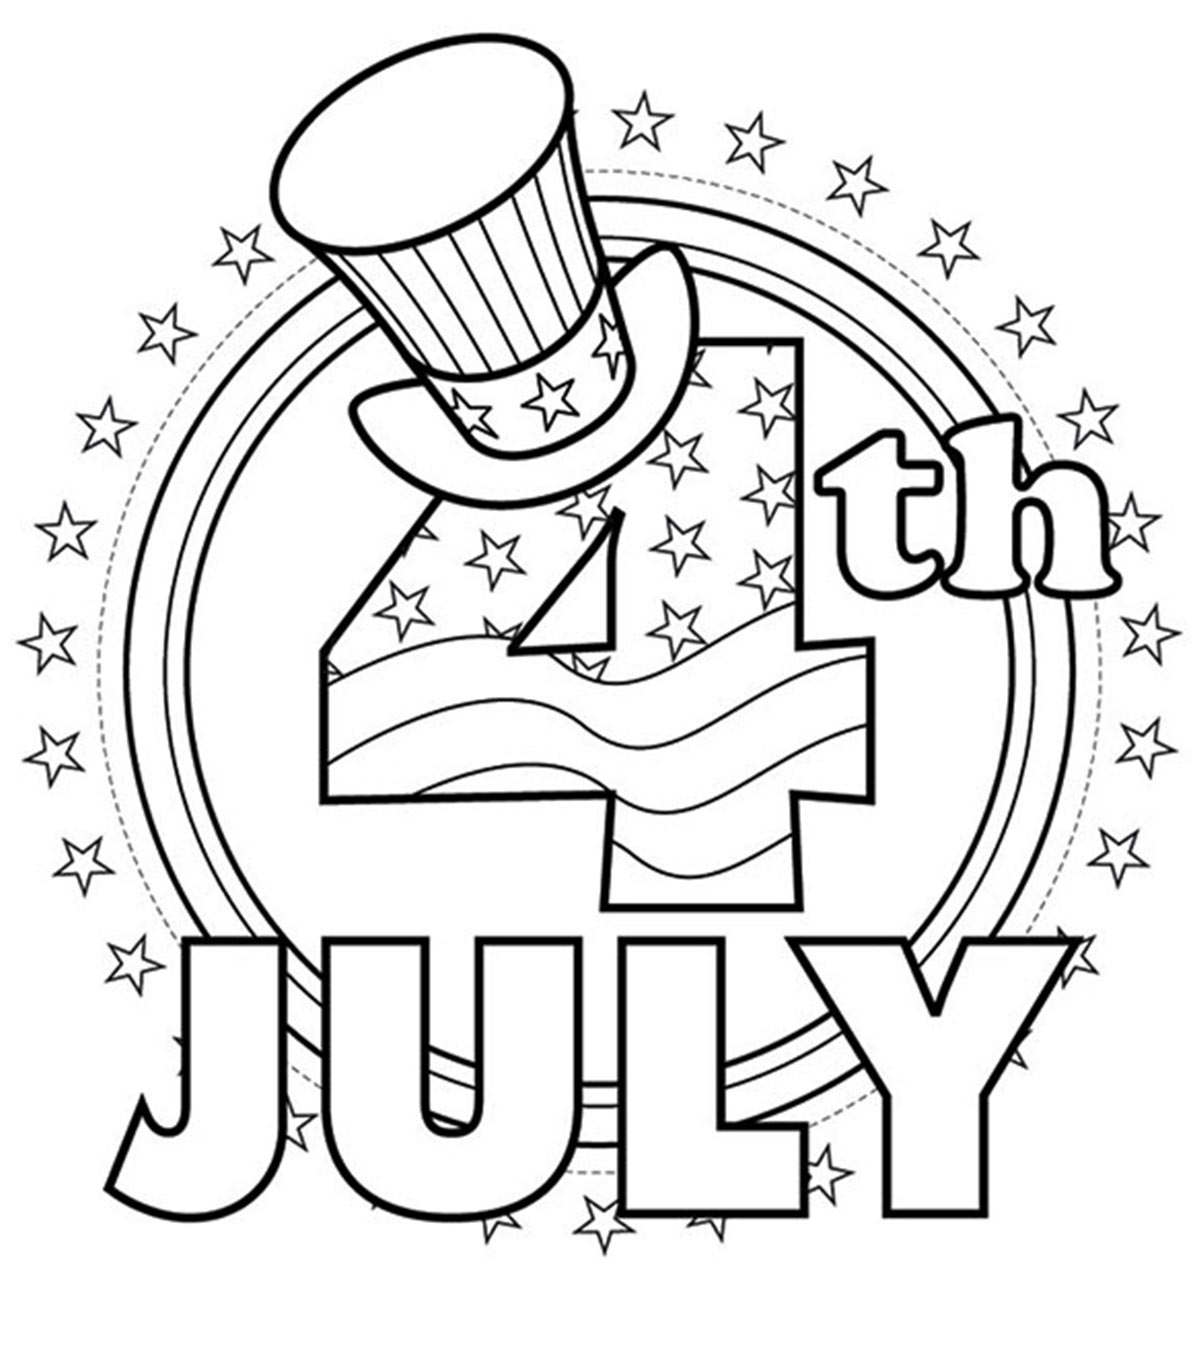 4th of July Coloring Pages Printable PDF Download 2021